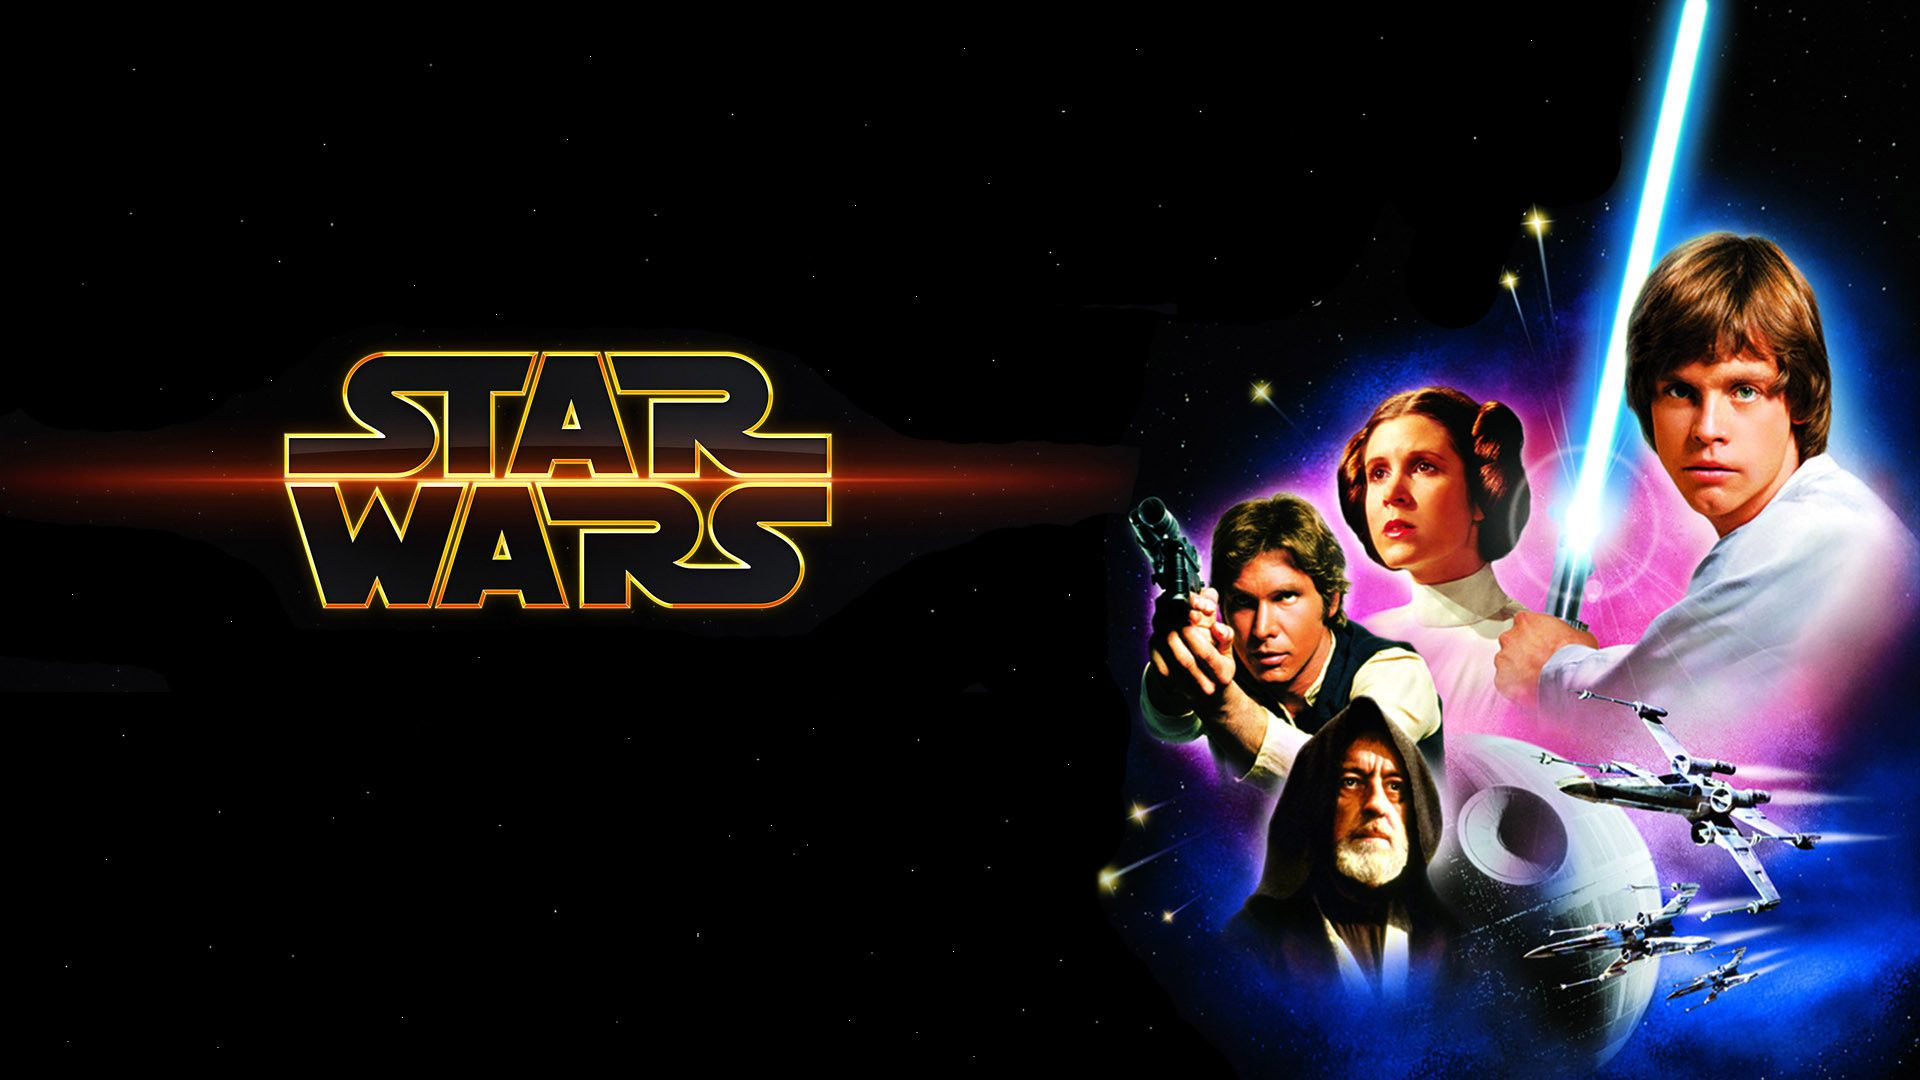 star wars a new hope character analysis essay The new star wars films are very valid analysis to offer i hope you origin in the essay likewise, the first death star is destroyed.